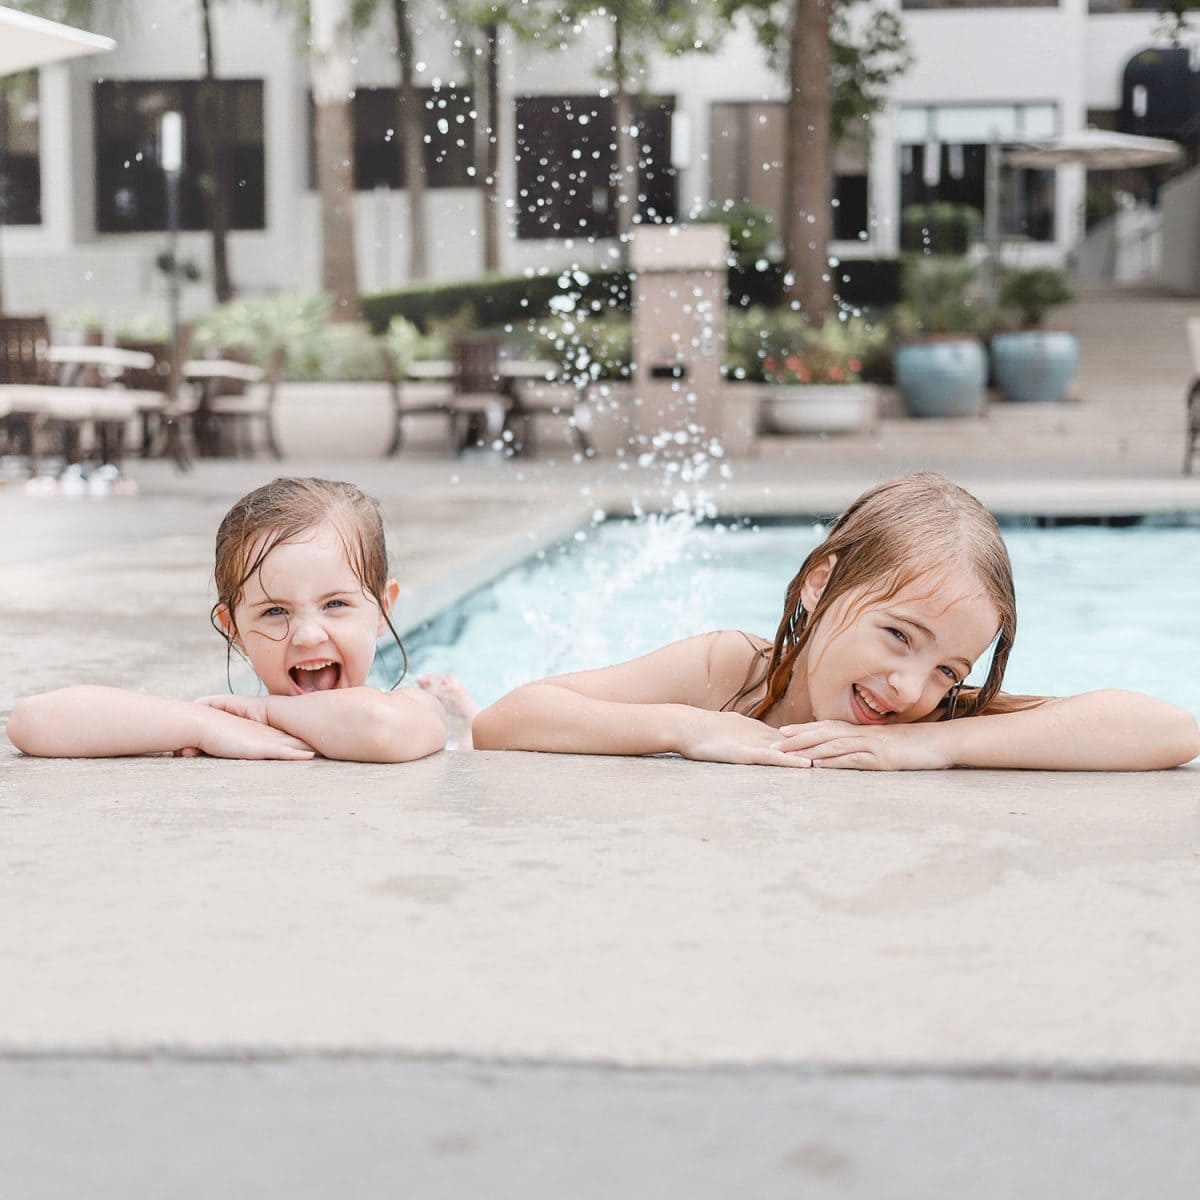 Houston blogger Meg O. on the Go shares her staycation at the Omni Houston Hotel - the pool at the Omni